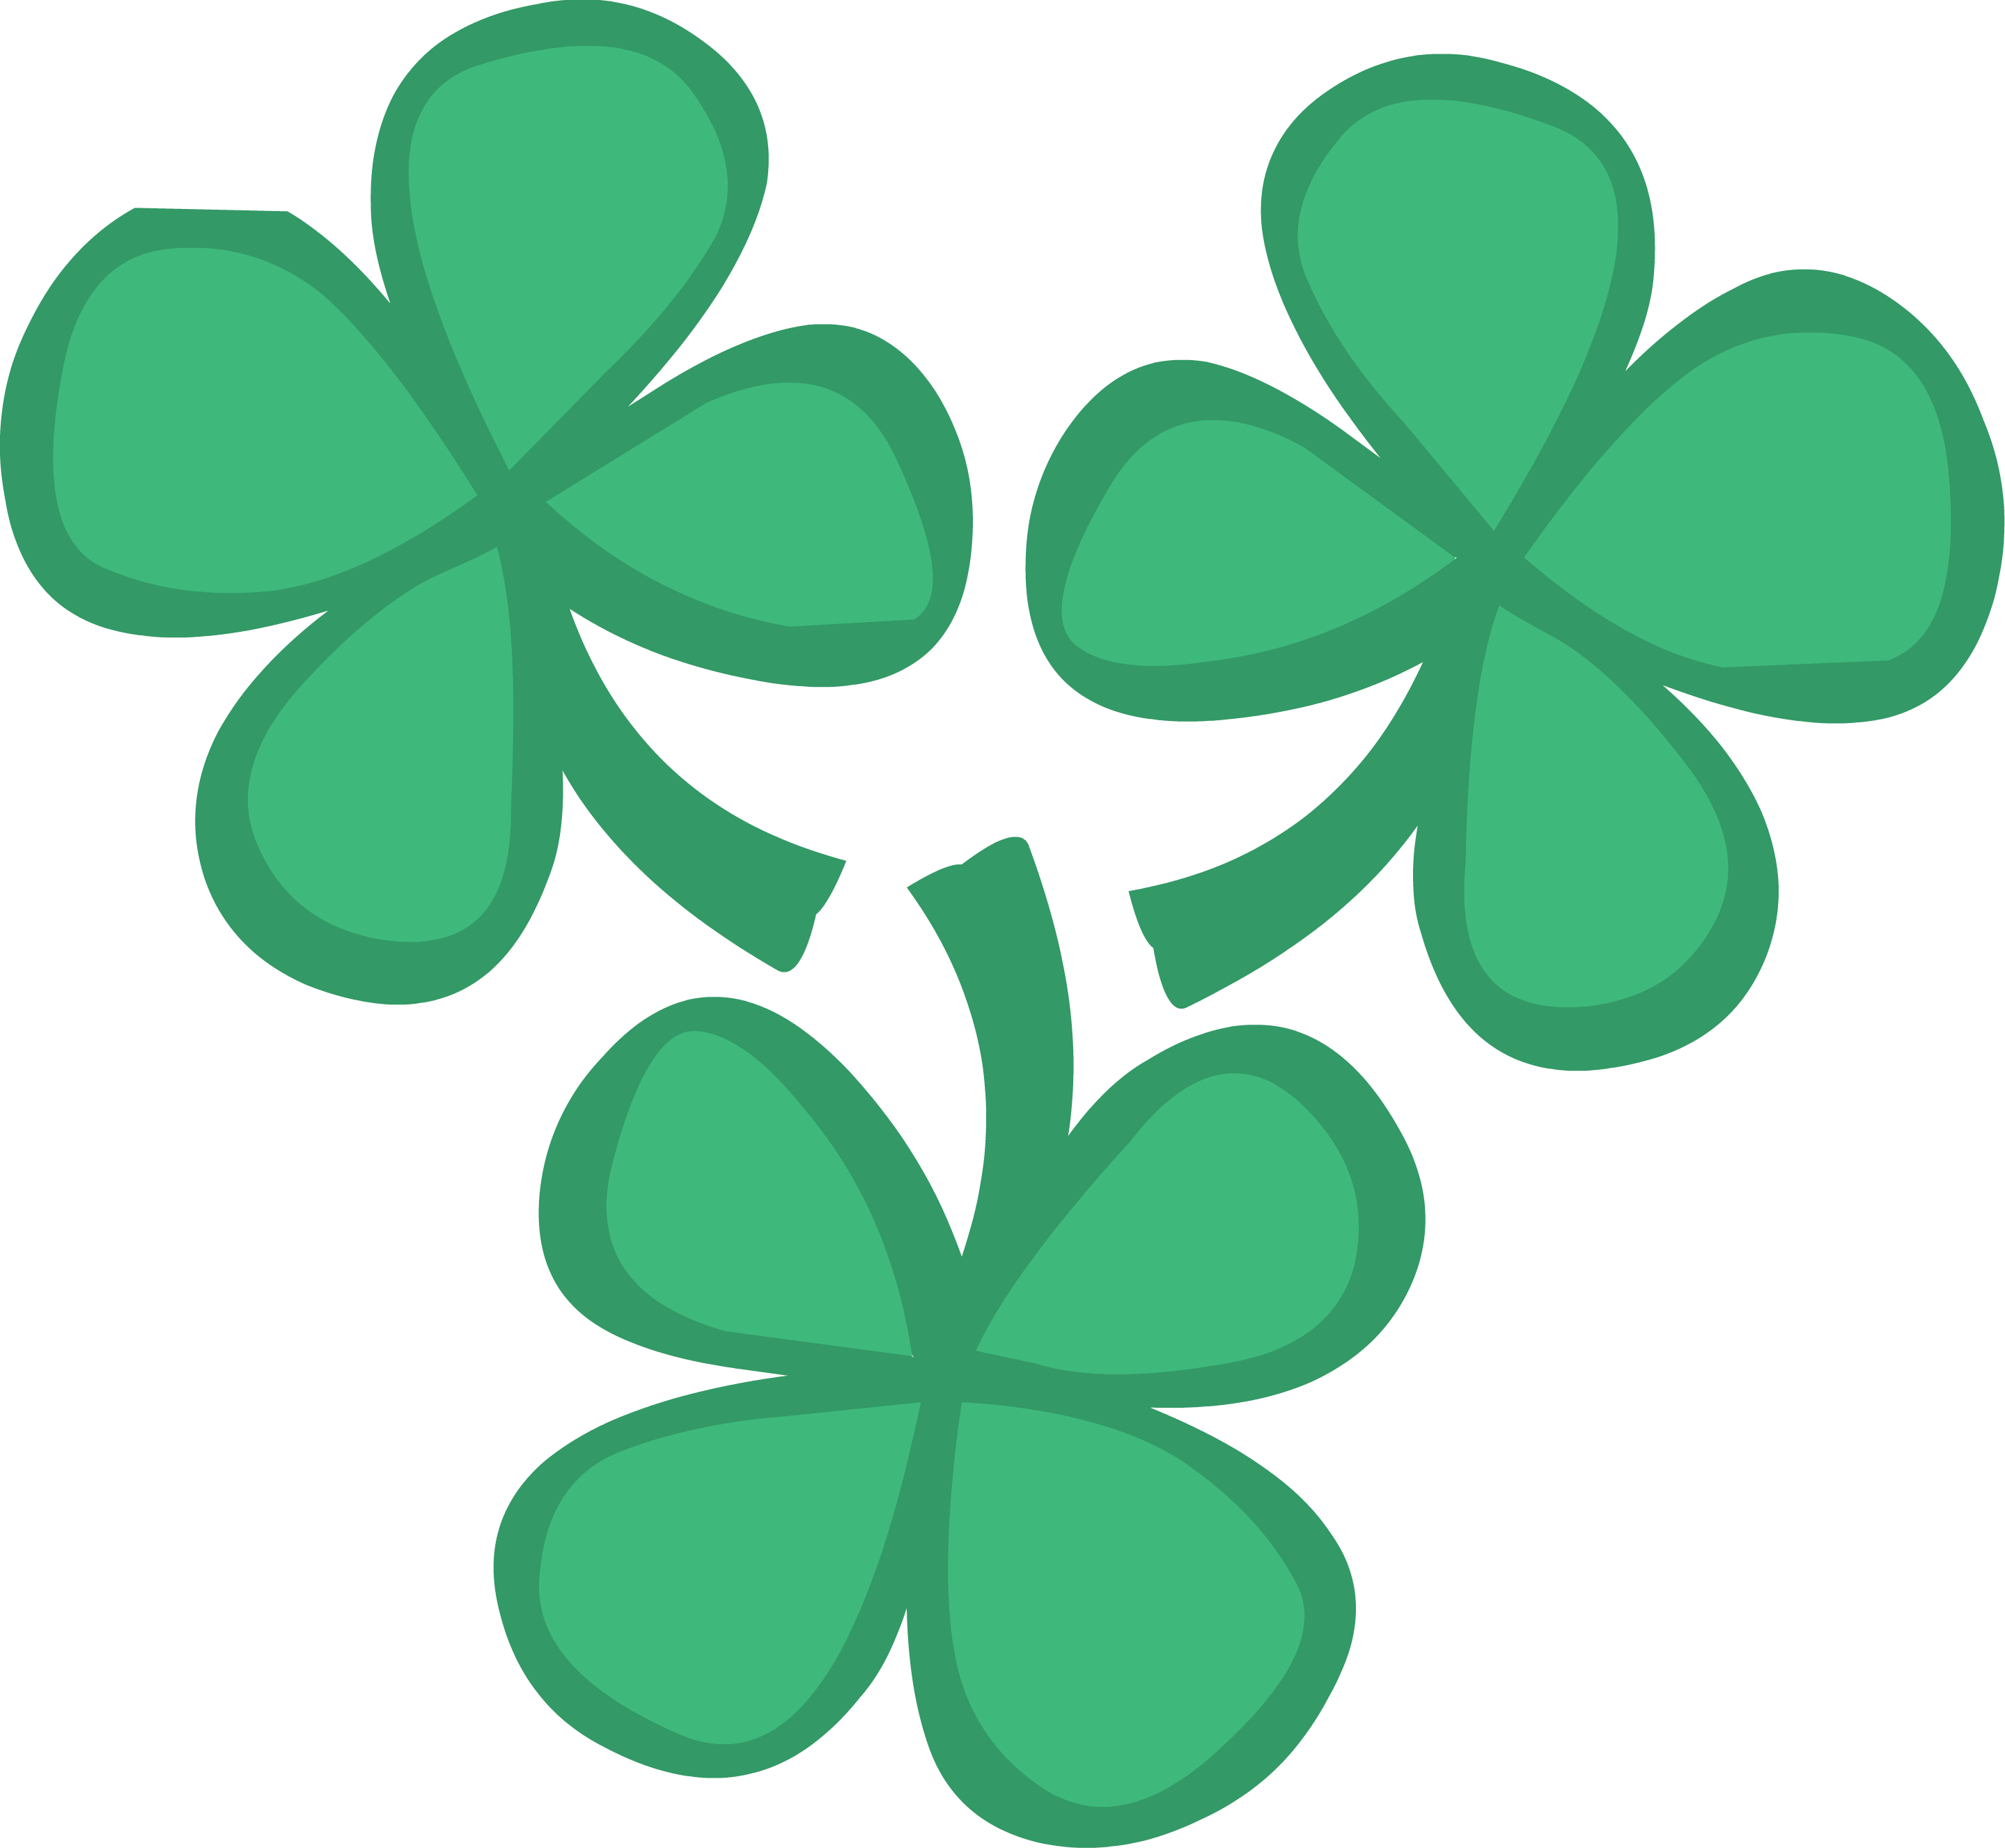 Images Of Four Leaf Clover   Free download on ClipArtMag